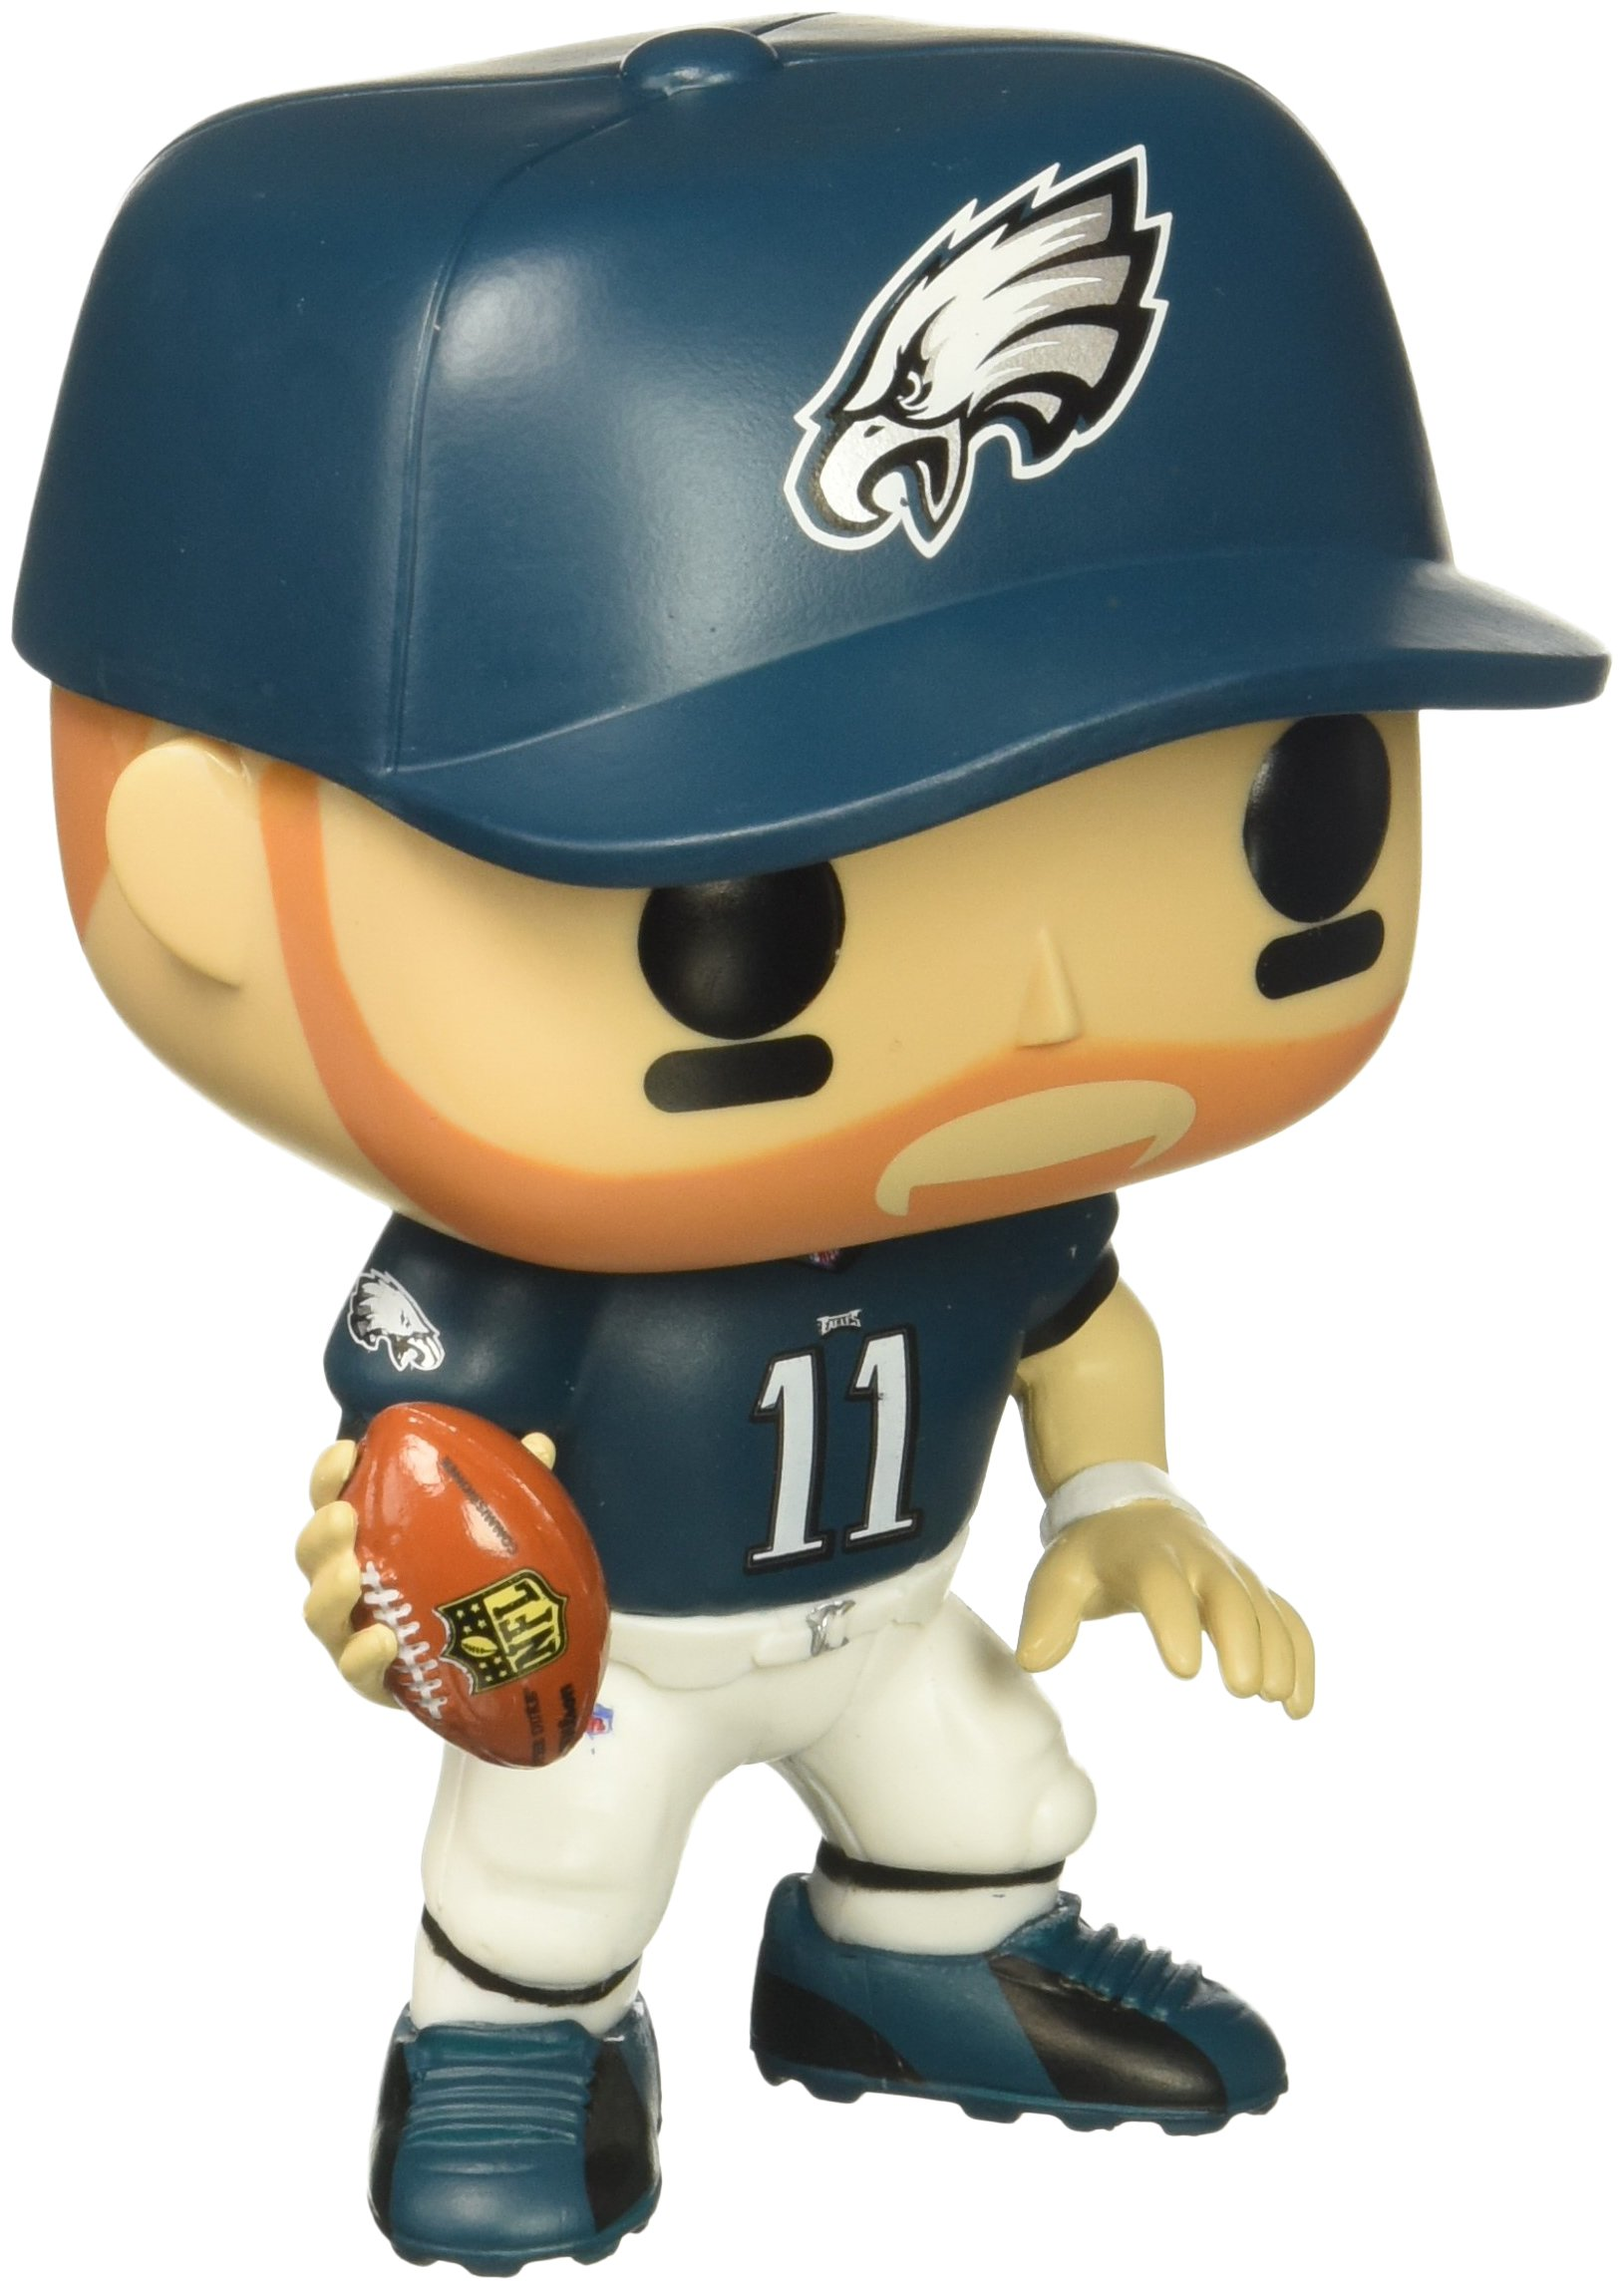 Funko POP NFL Seahawks Home Collectible Figure Bobby Wagner